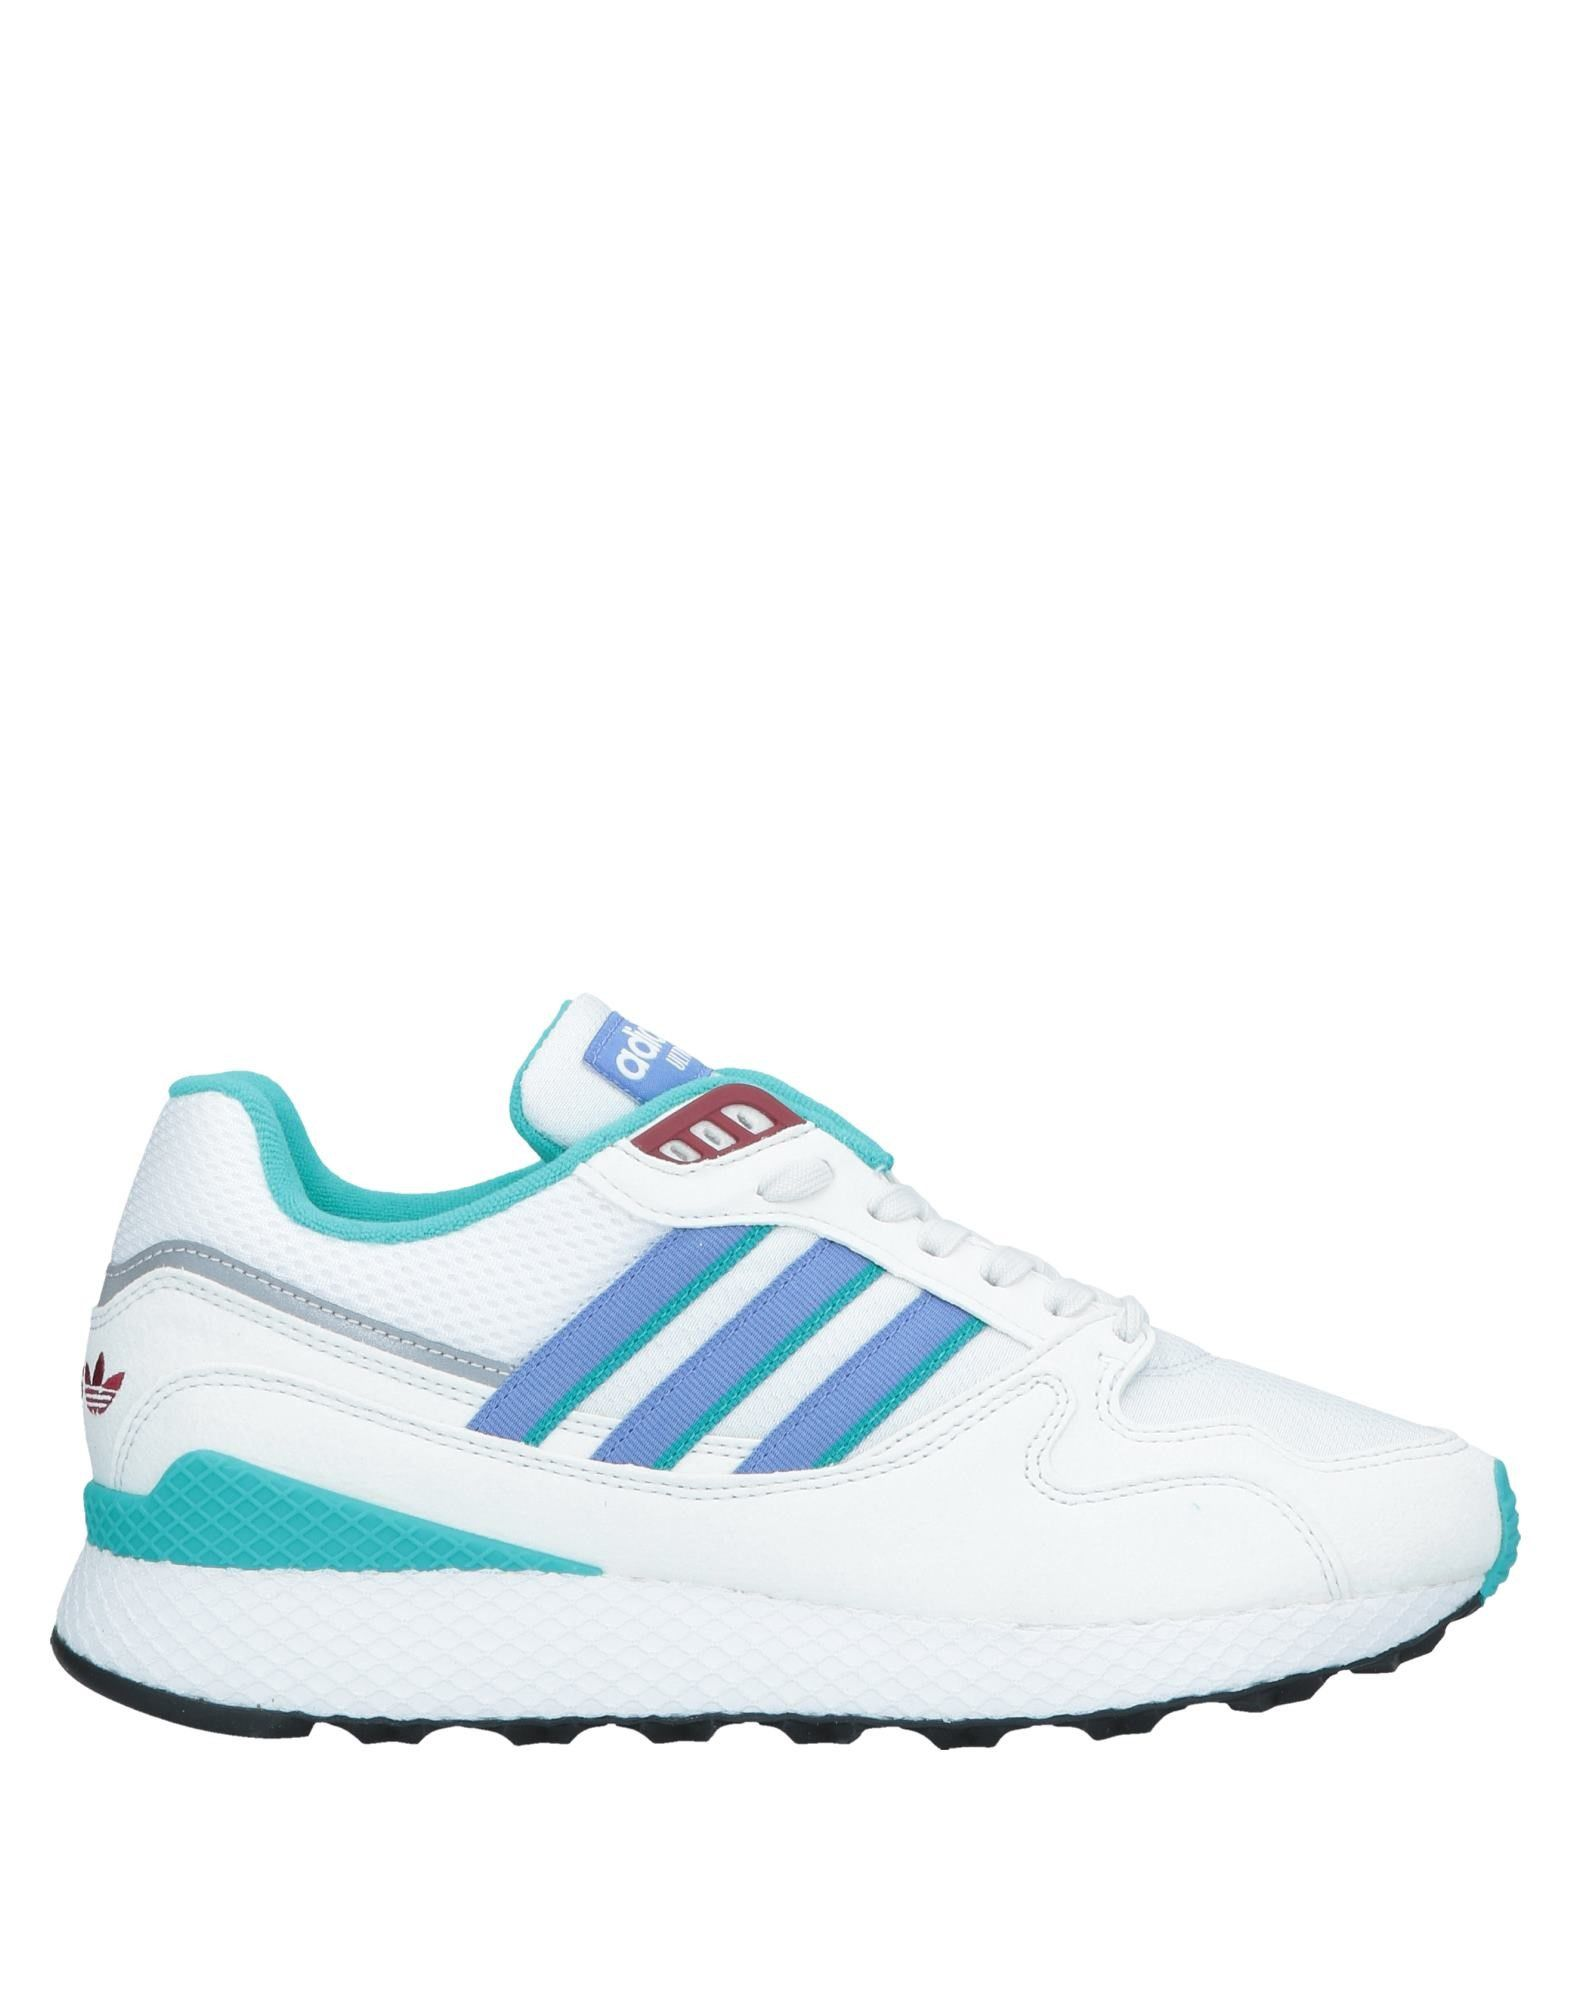 Turnscarpe Turnscarpe Turnscarpe Adidas Originals uomo - 11642954JG 18f